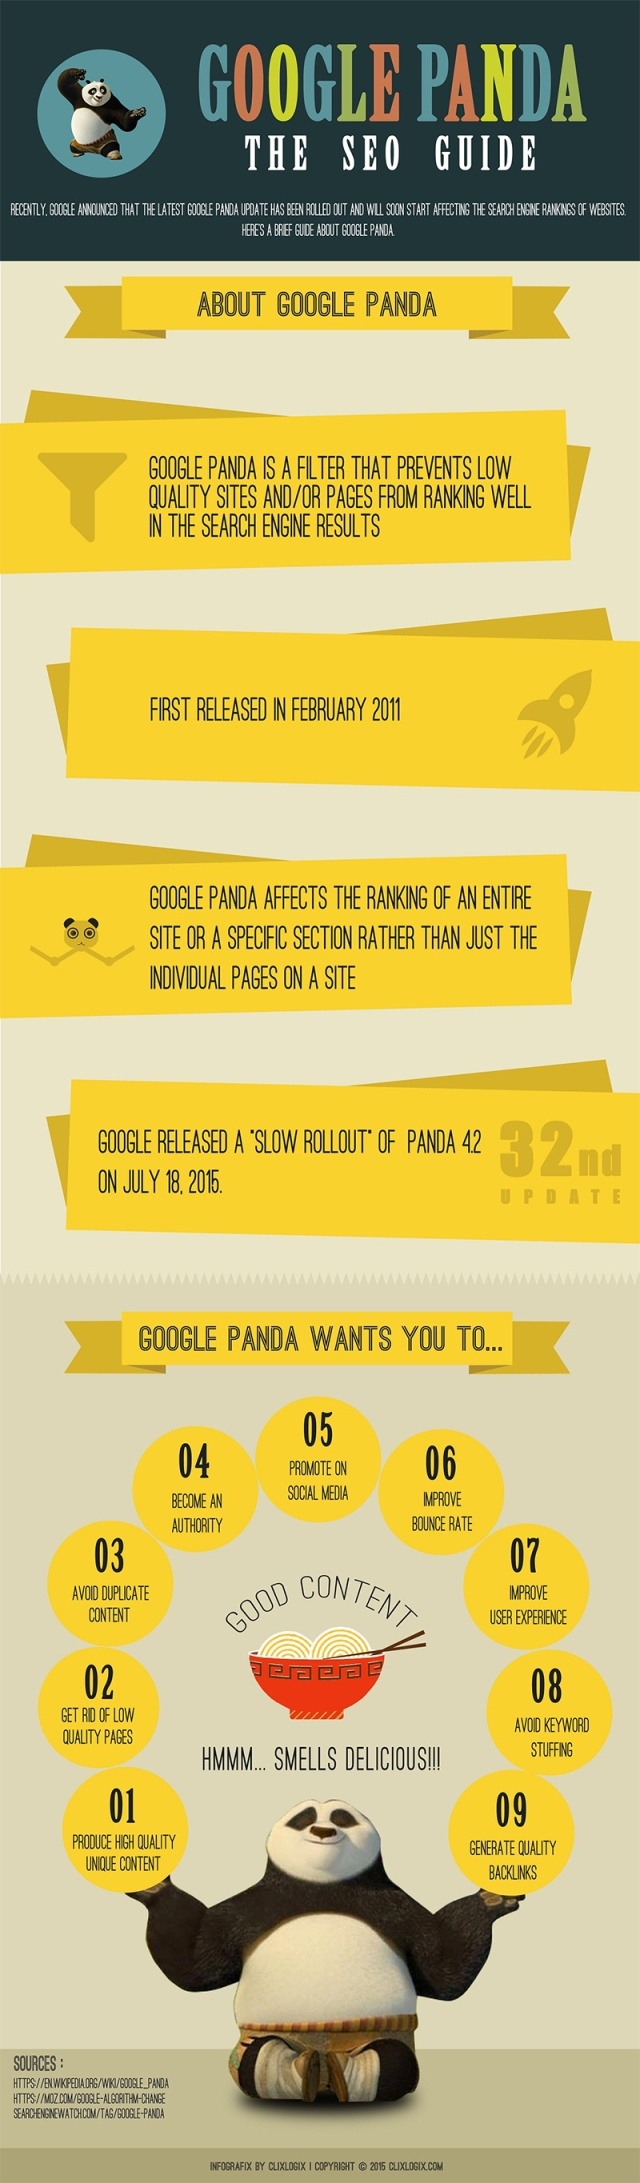 Google Panda Is Coming For You! 9 Ways to Avoid Your Site Being Demoted